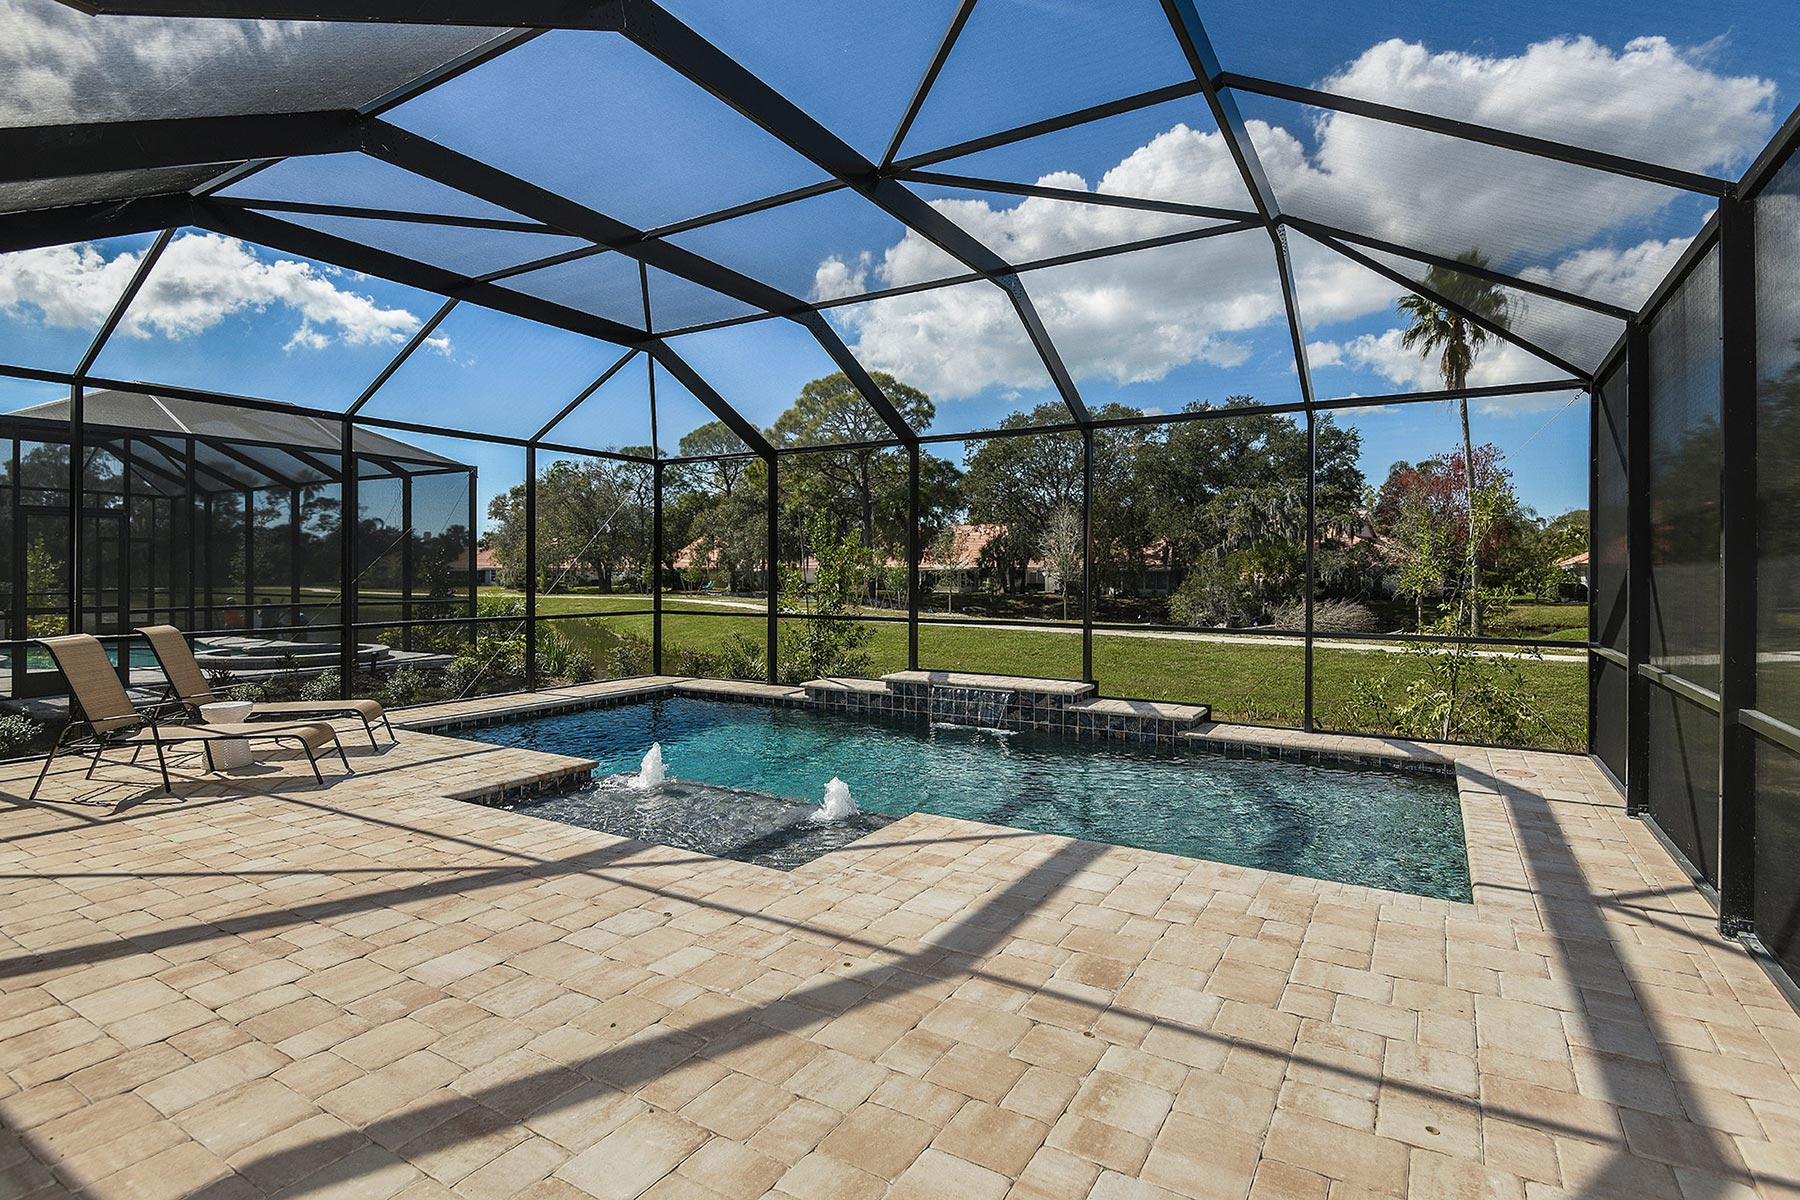 Sunlit Plan WaterFeatures at Sunrise Preserve at Palmer Ranch in Sarasota Florida by Mattamy Homes